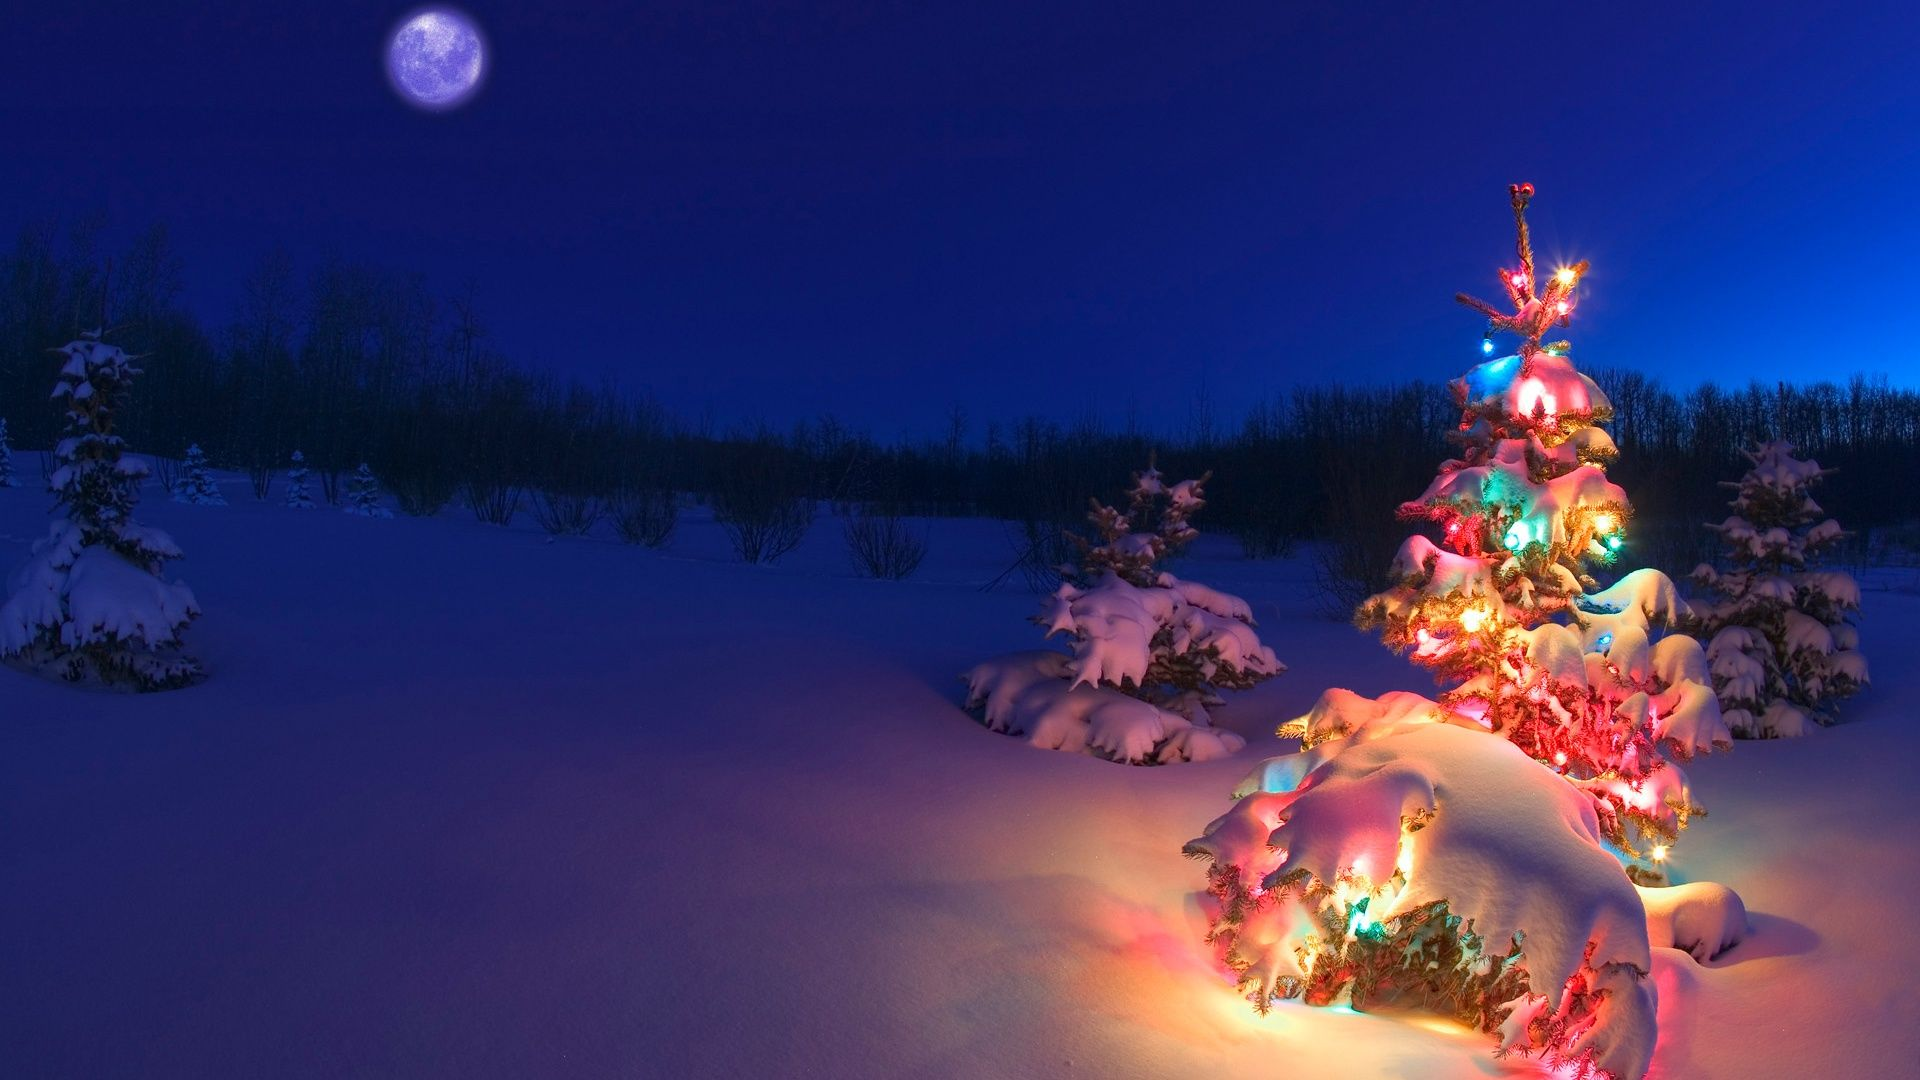 Hd wallpaper xmas - Lightning Christmas Tree In The Snow Hd Winter Wallpaper Christmas Easter Valentine S Day And Many Other Holidays Wallpapers